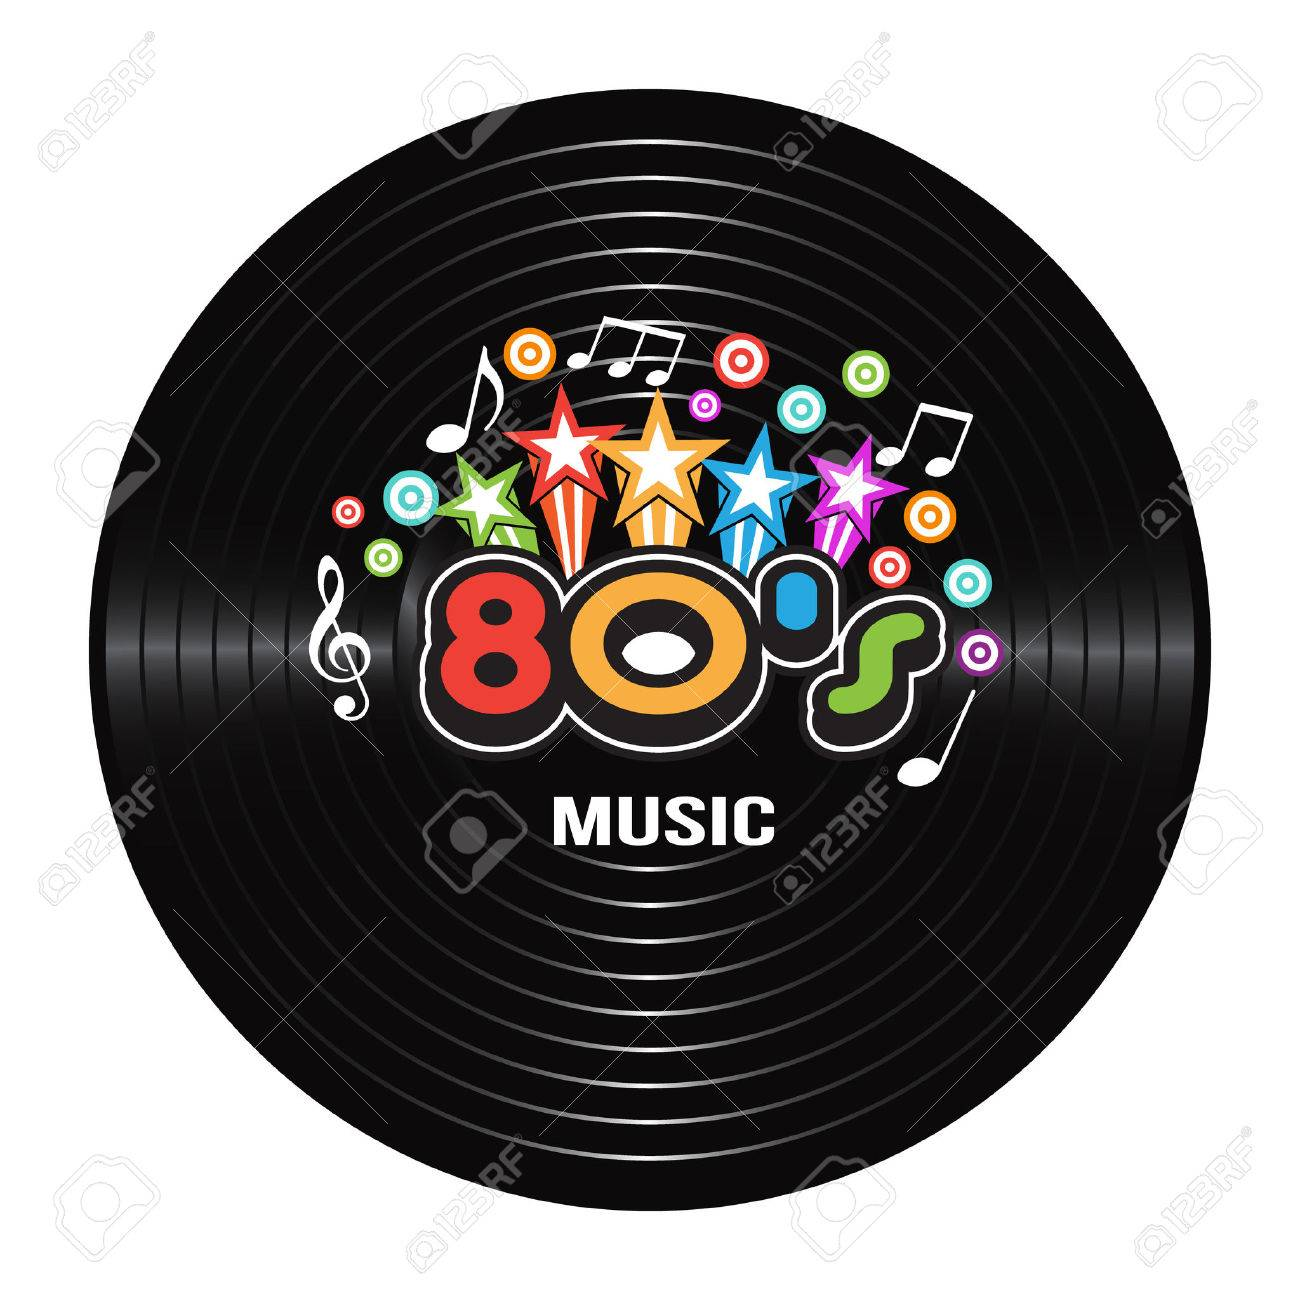 Image result for 80's music